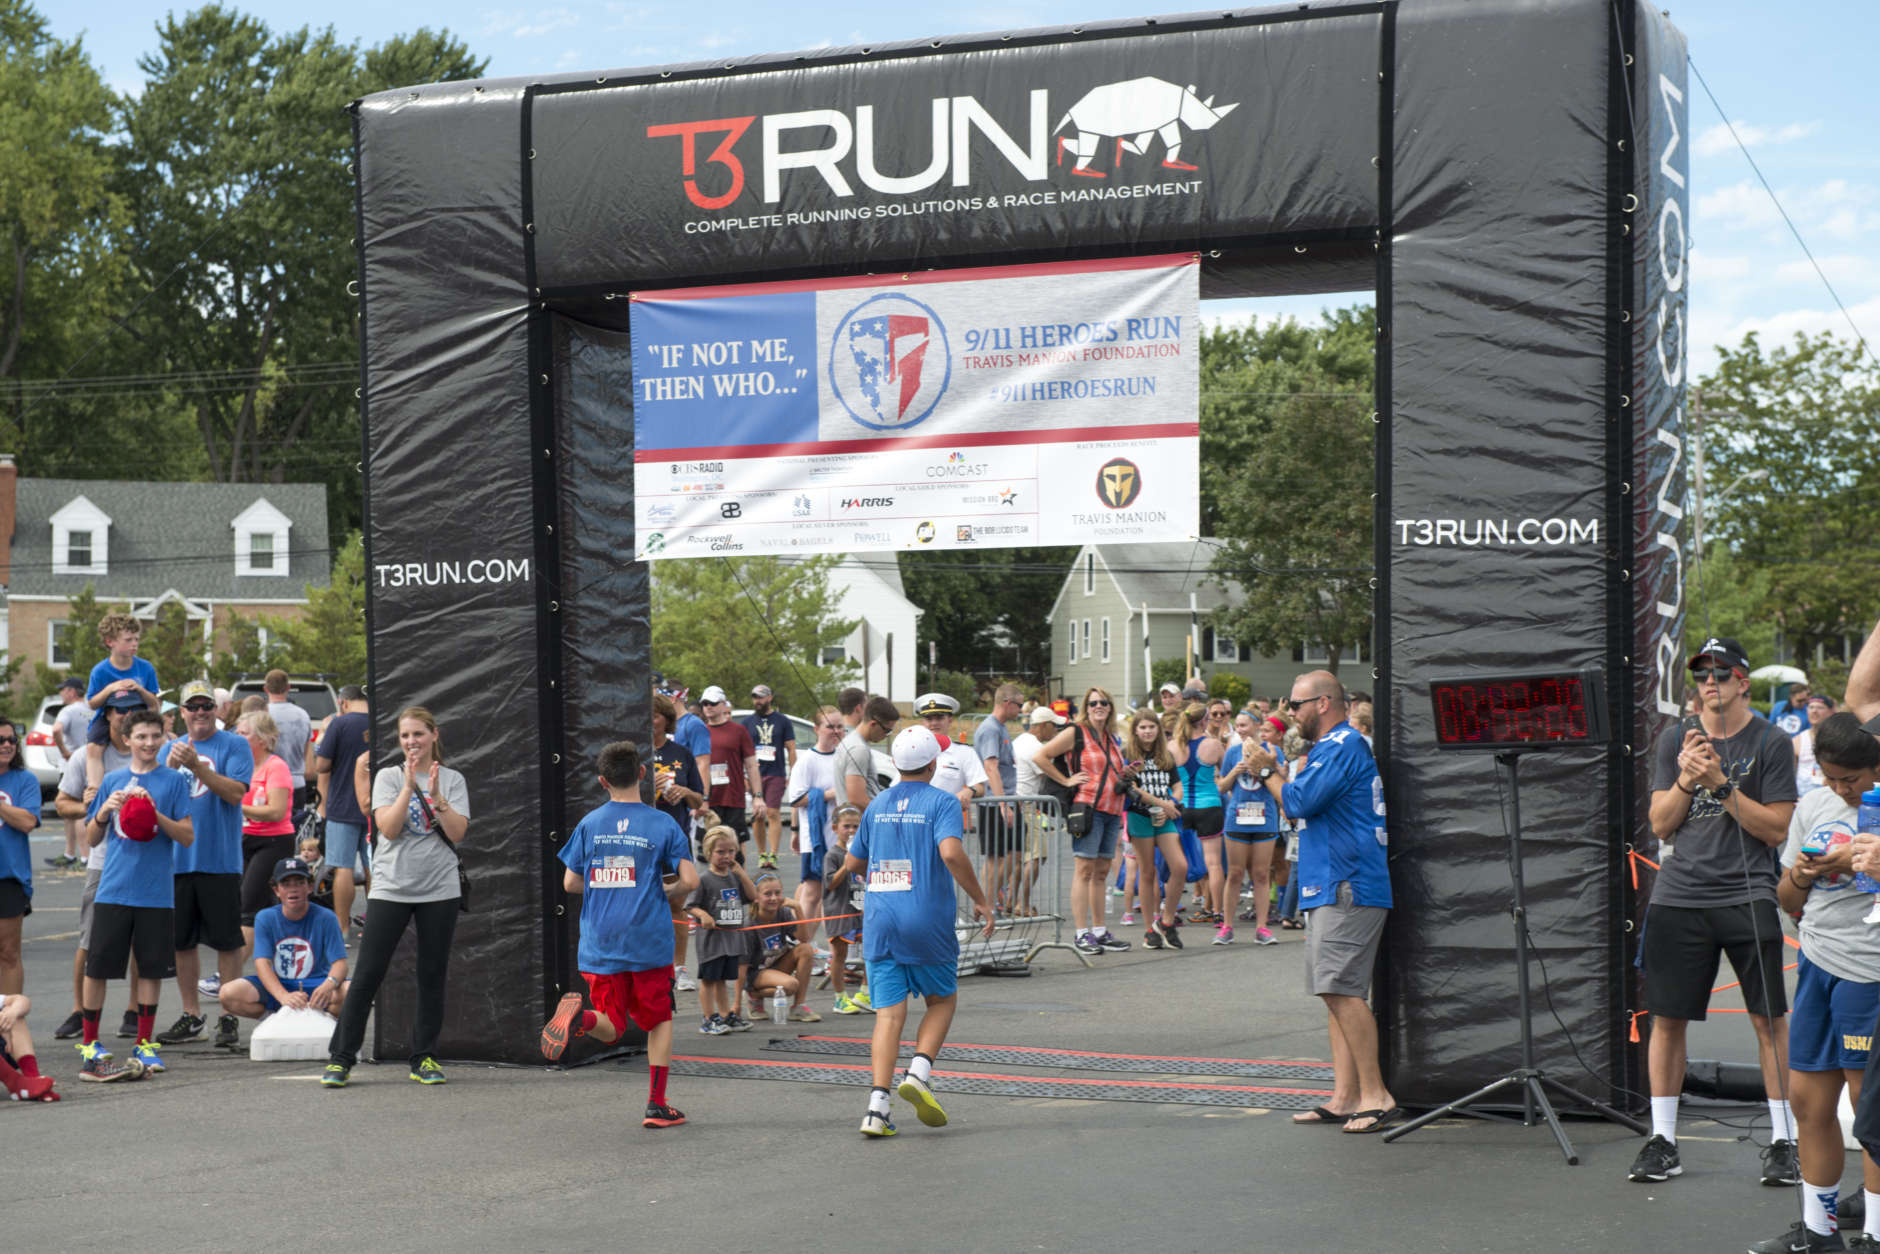 The 9/11 Heroes 5K run in Annapolis, Maryland, is among 50 Heroes Runs held in the US and abroad. (Courtesy Harrison Hart)